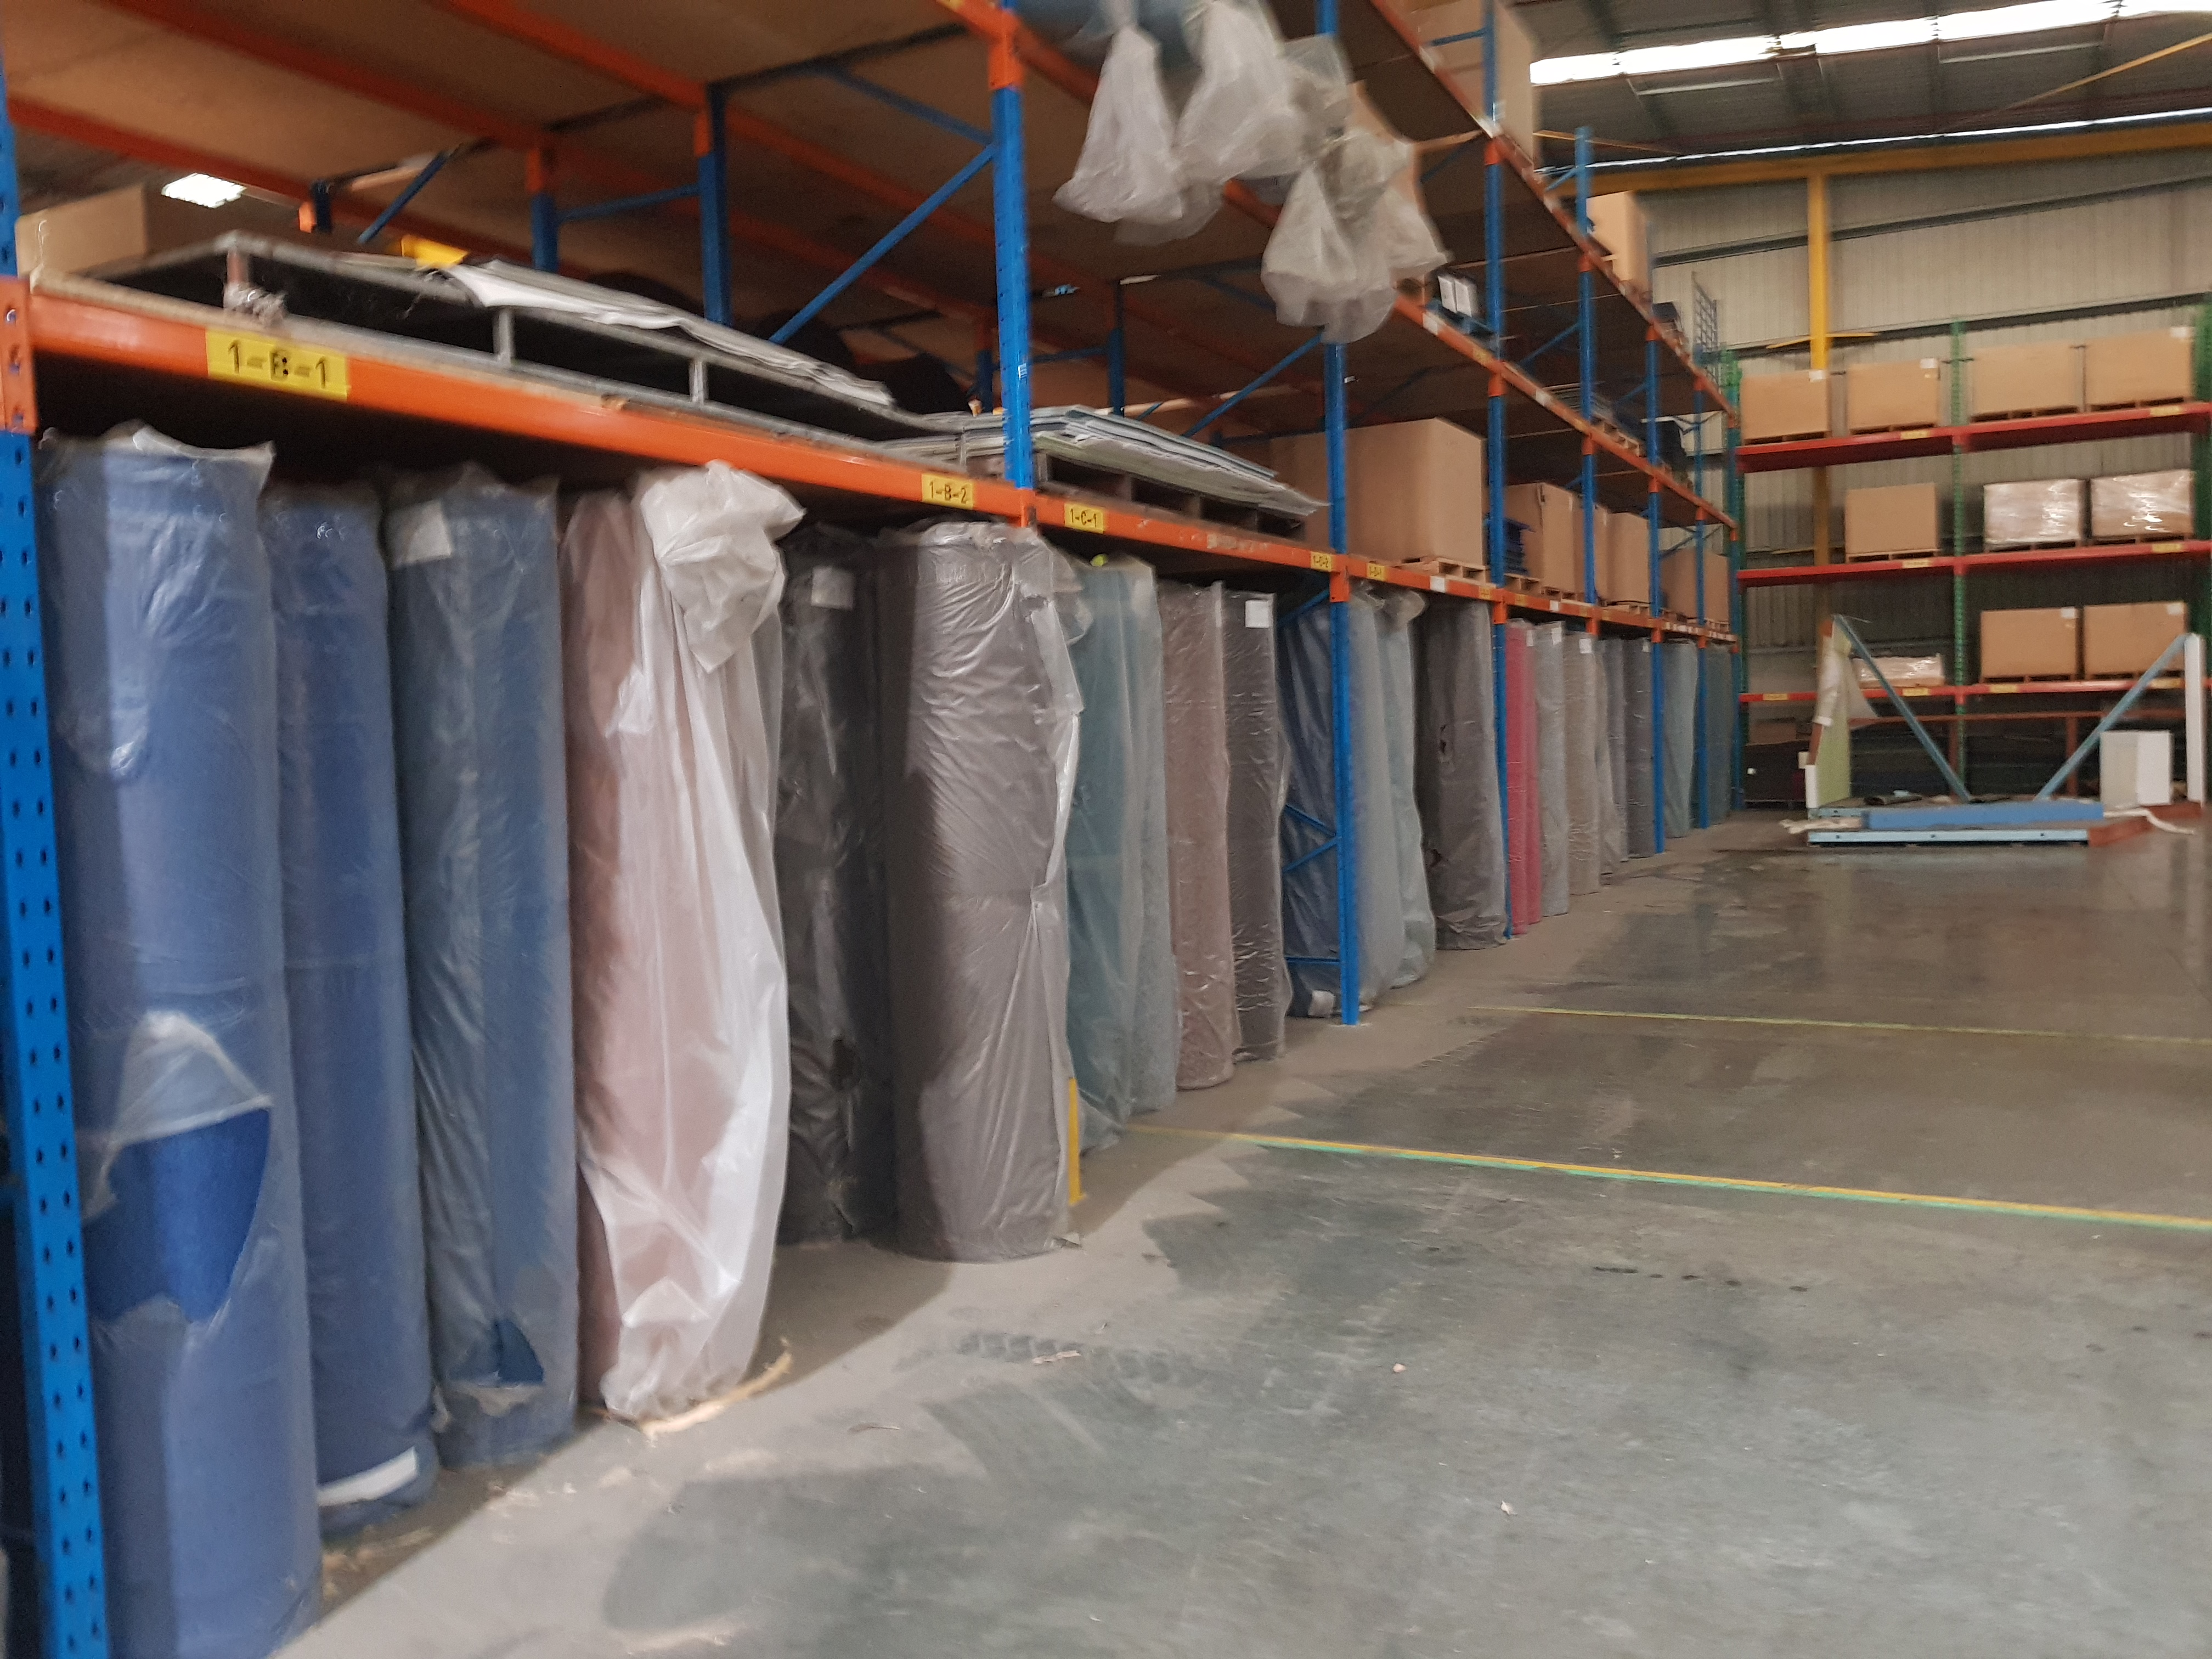 Liquidators Auction – Textile Manufacturing – Dilo Looms, Ramisch Embossing Calender, Carders, Openers, Over $1m Carpet/Carpet Tile Stock, 11 x 40' Shipping Containers, Pallet Racking, Forklift Etc.